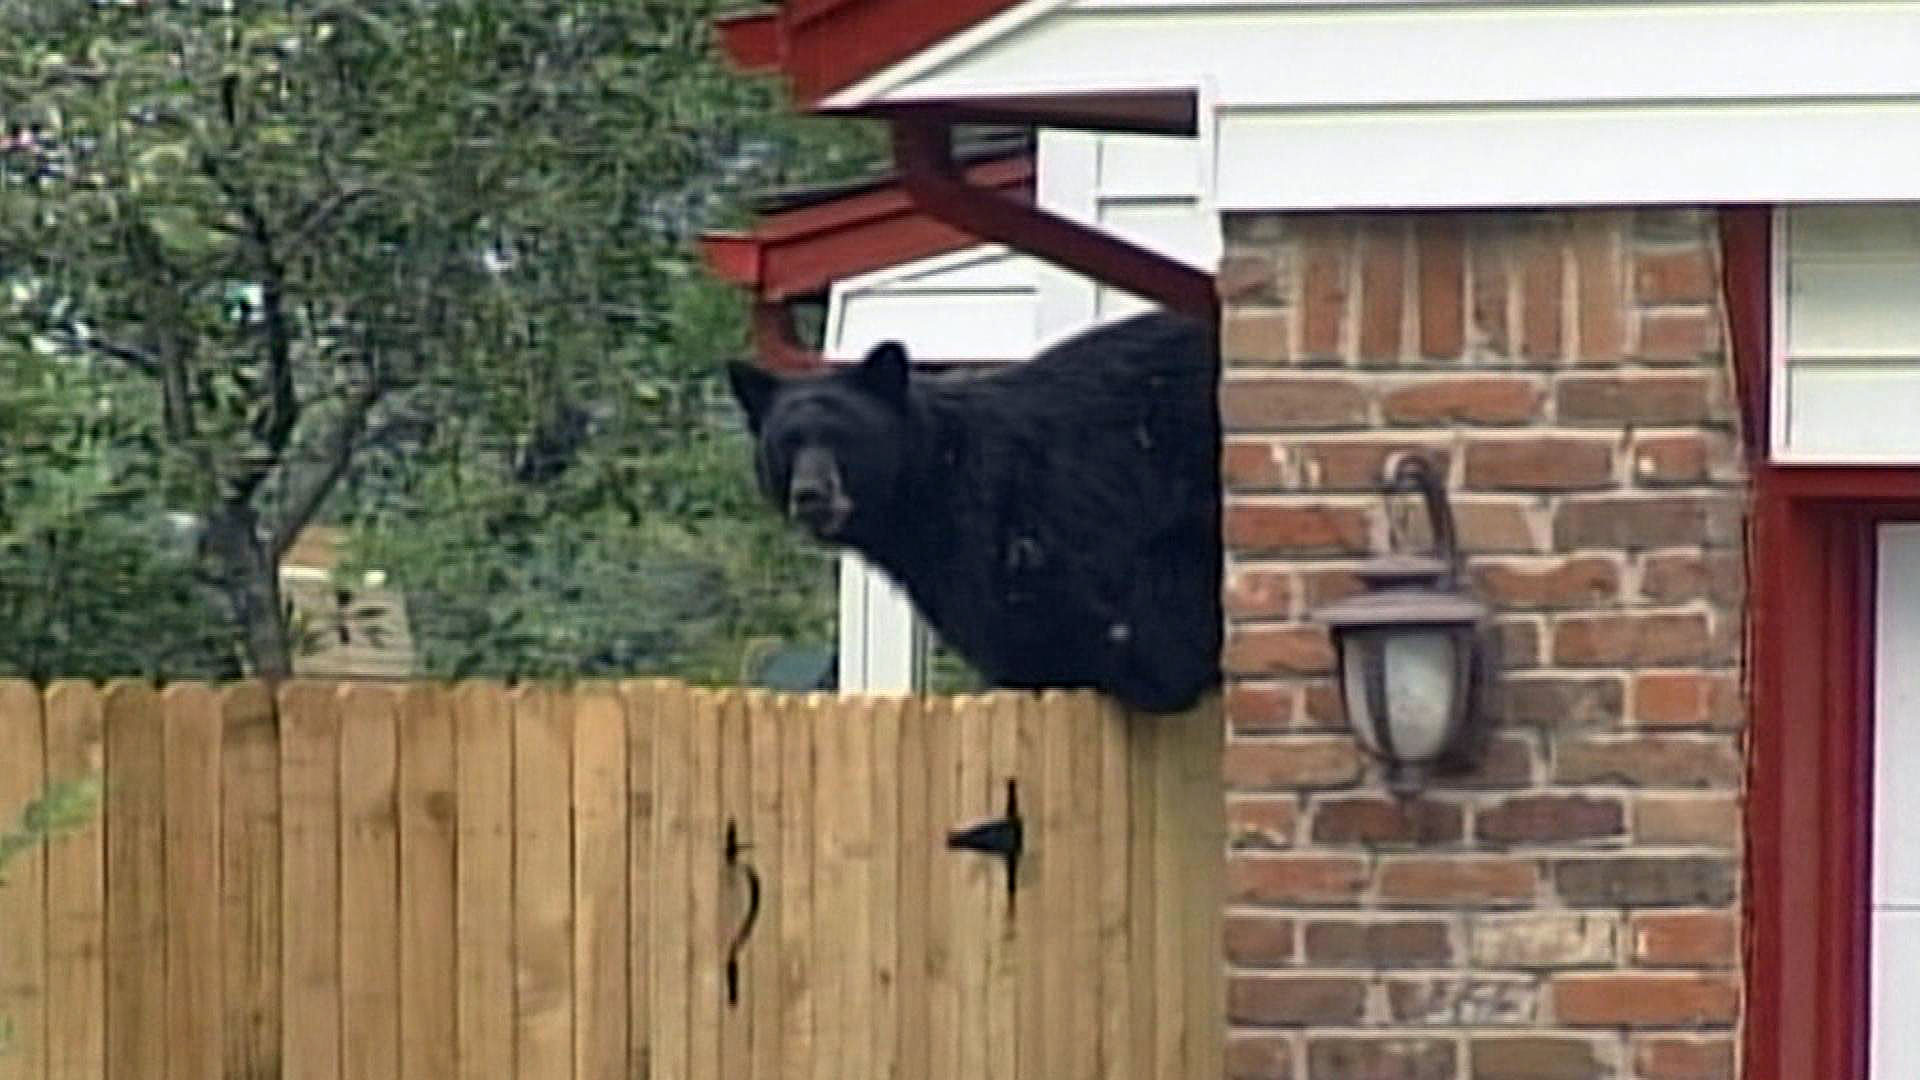 A bear wander the Cherry Knolls neighborhood in Centennial in 2001 (credit: CBS)